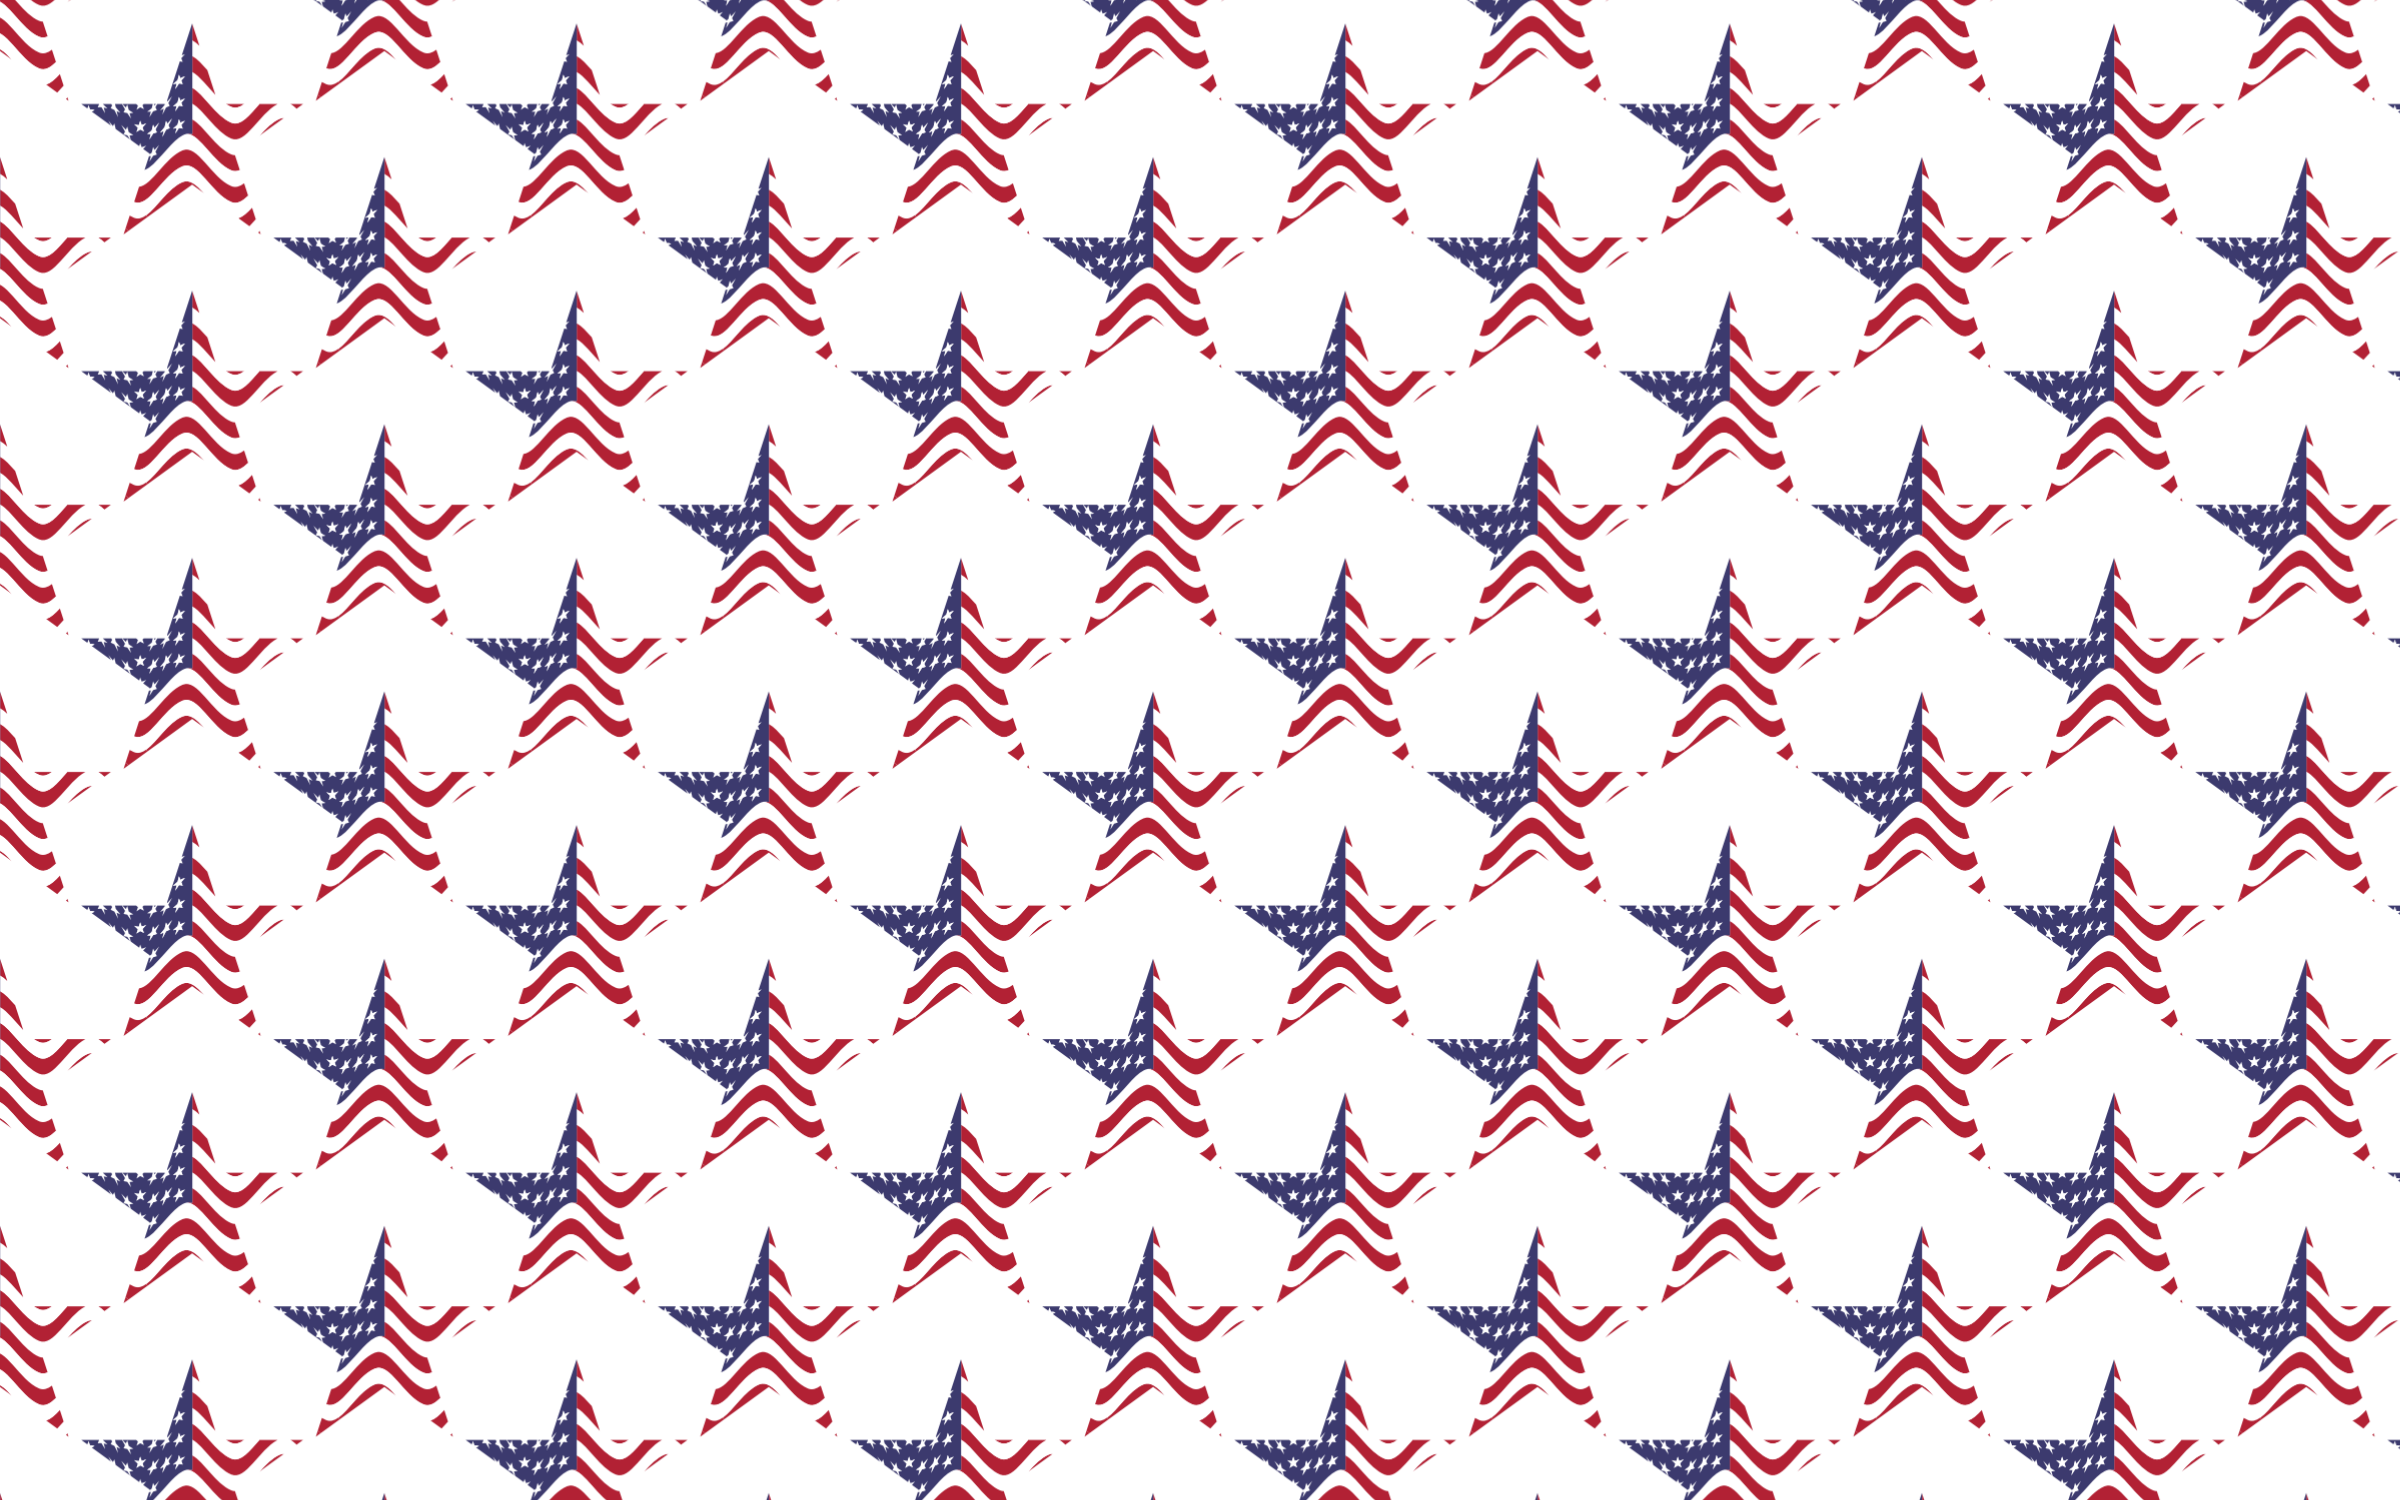 Star pattern png. Seamless usa flag icons